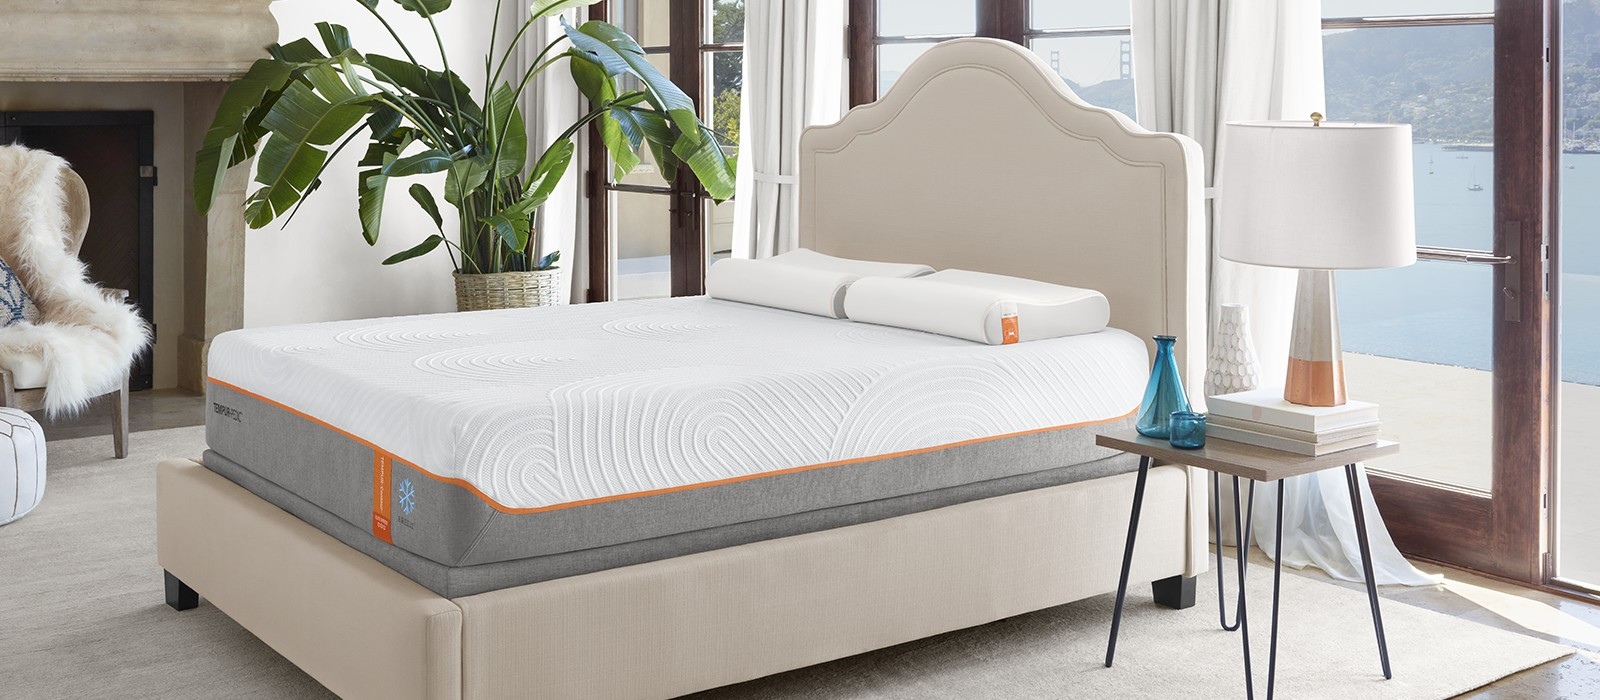 my new tempER pedic bed makes my back ache like it hasnt ached for 4 years. it has absolutly no support. the only reason im not crippled is because i am proactive in my daily stretching and back exercises, am i the only one on the face of the earth who thinks .